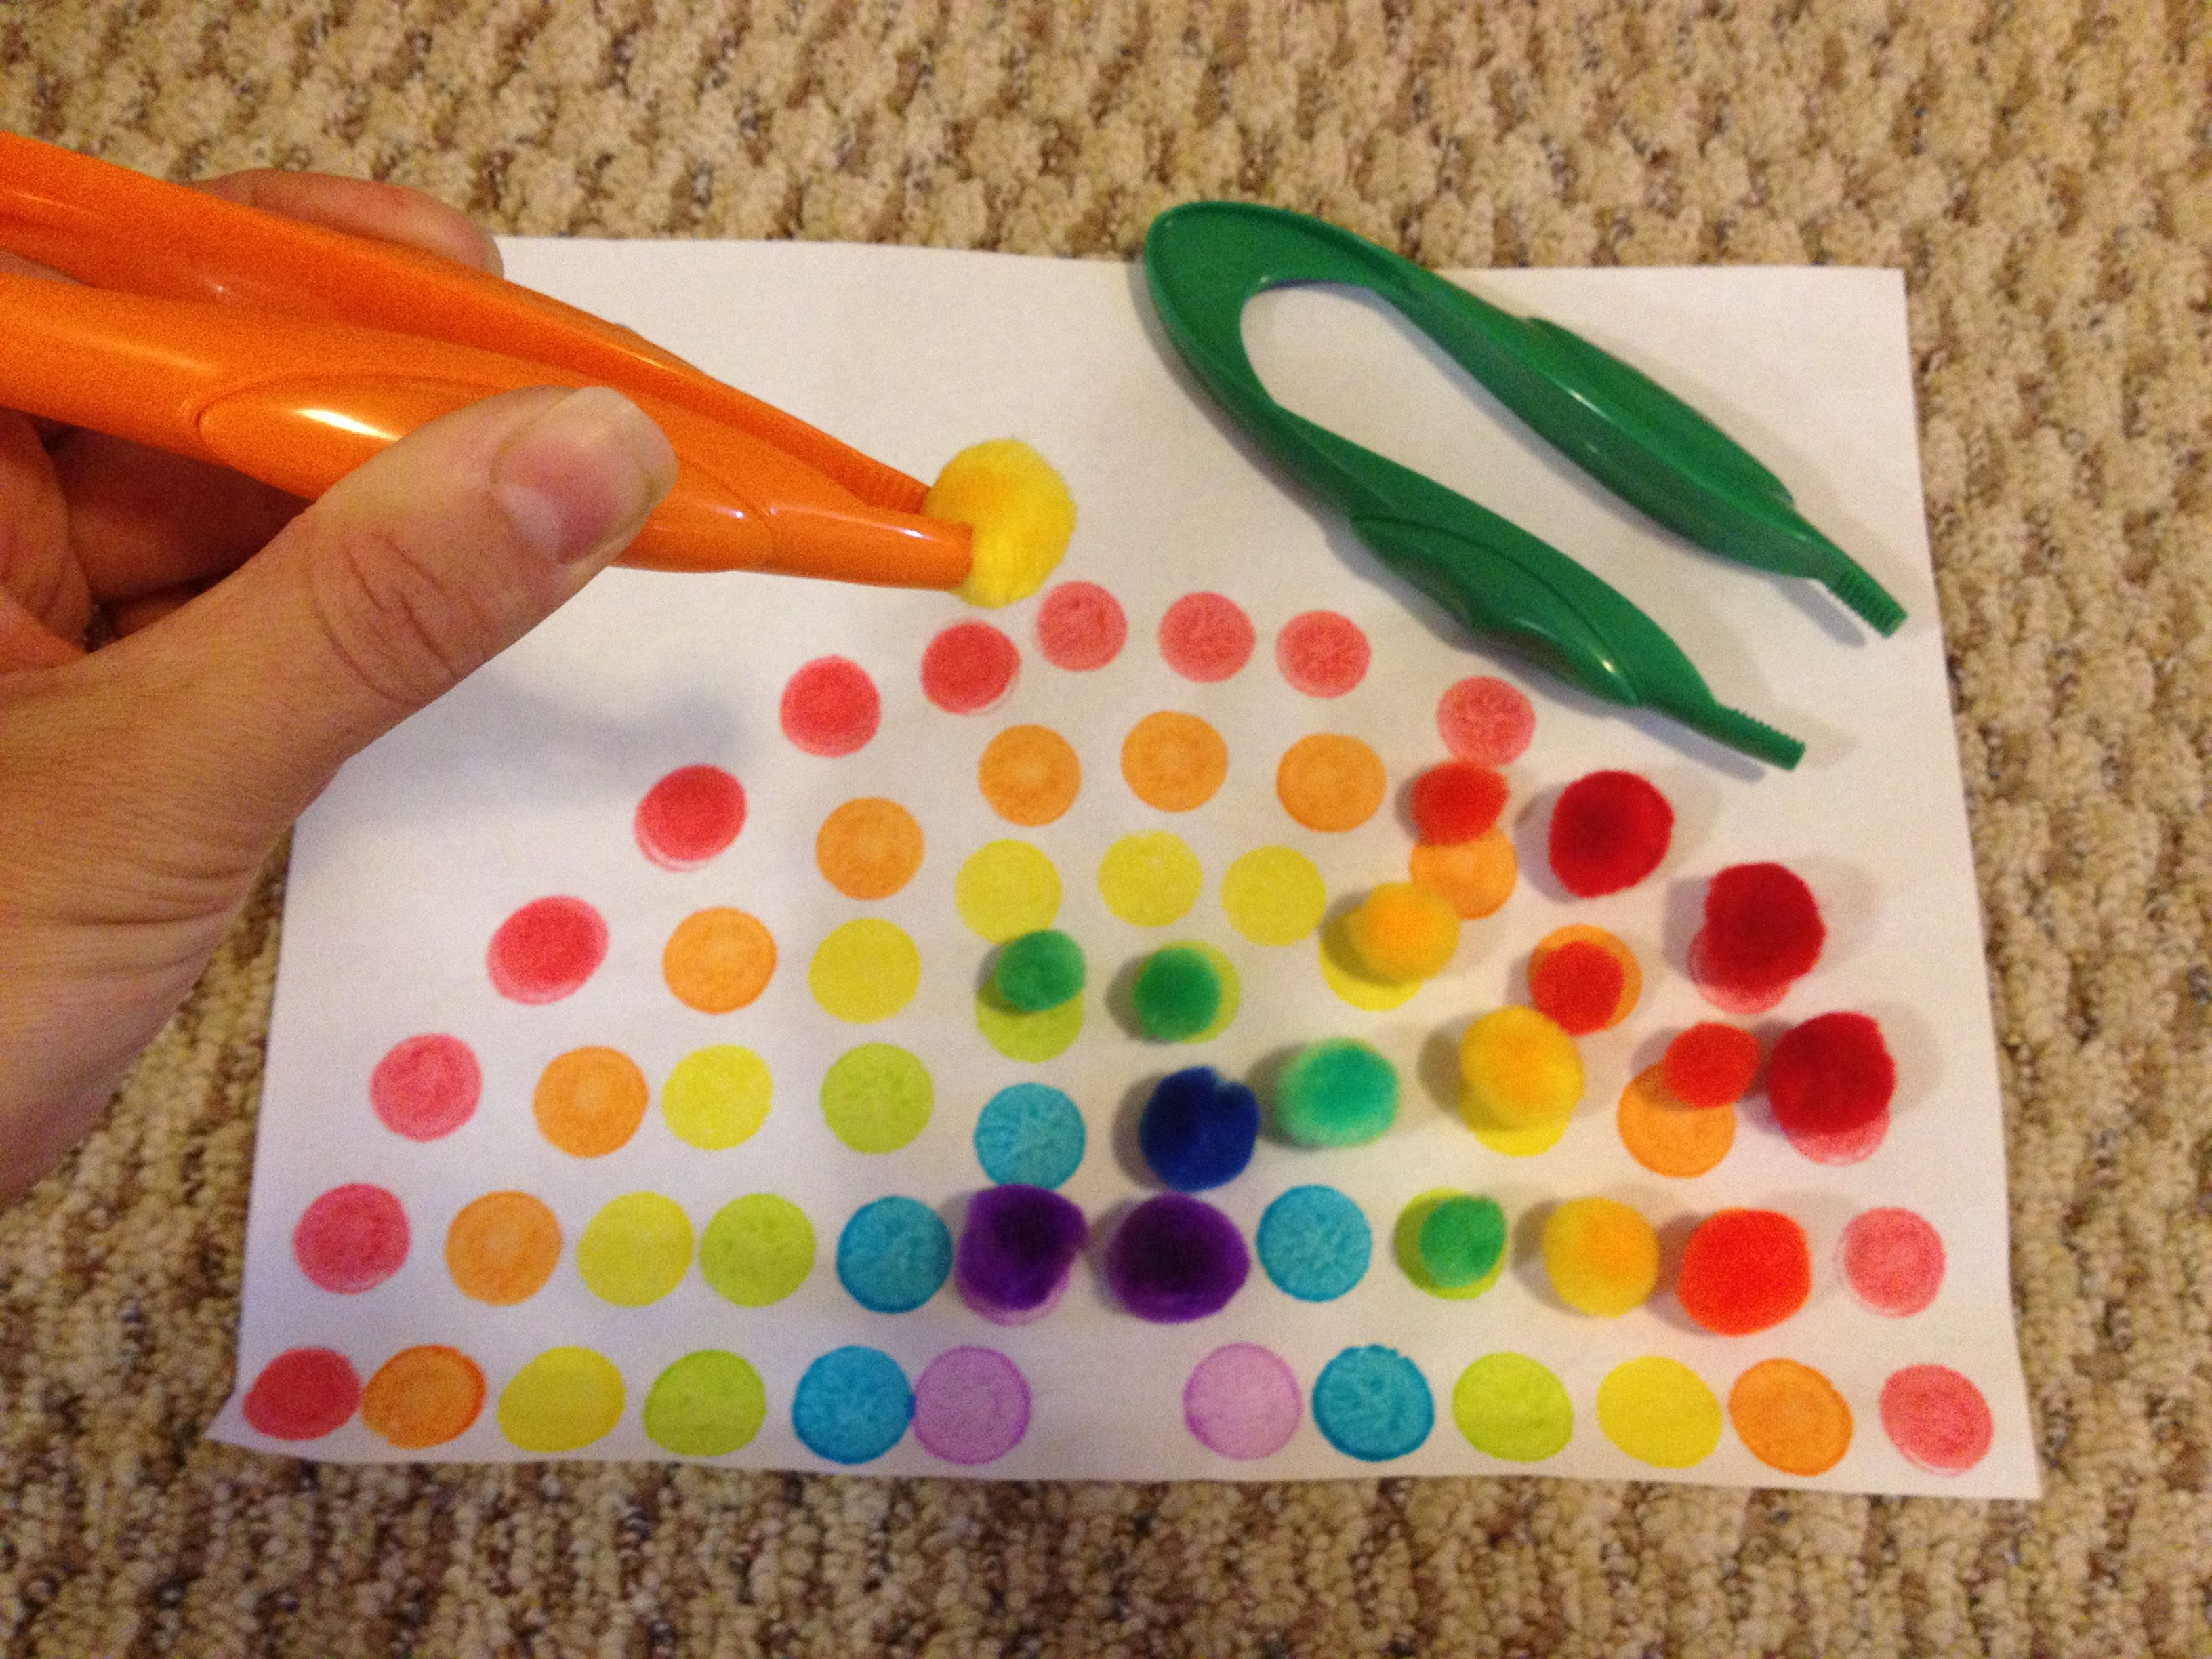 Fine Motor Place Pom Poms On Dotted Rainbow With Tweezers